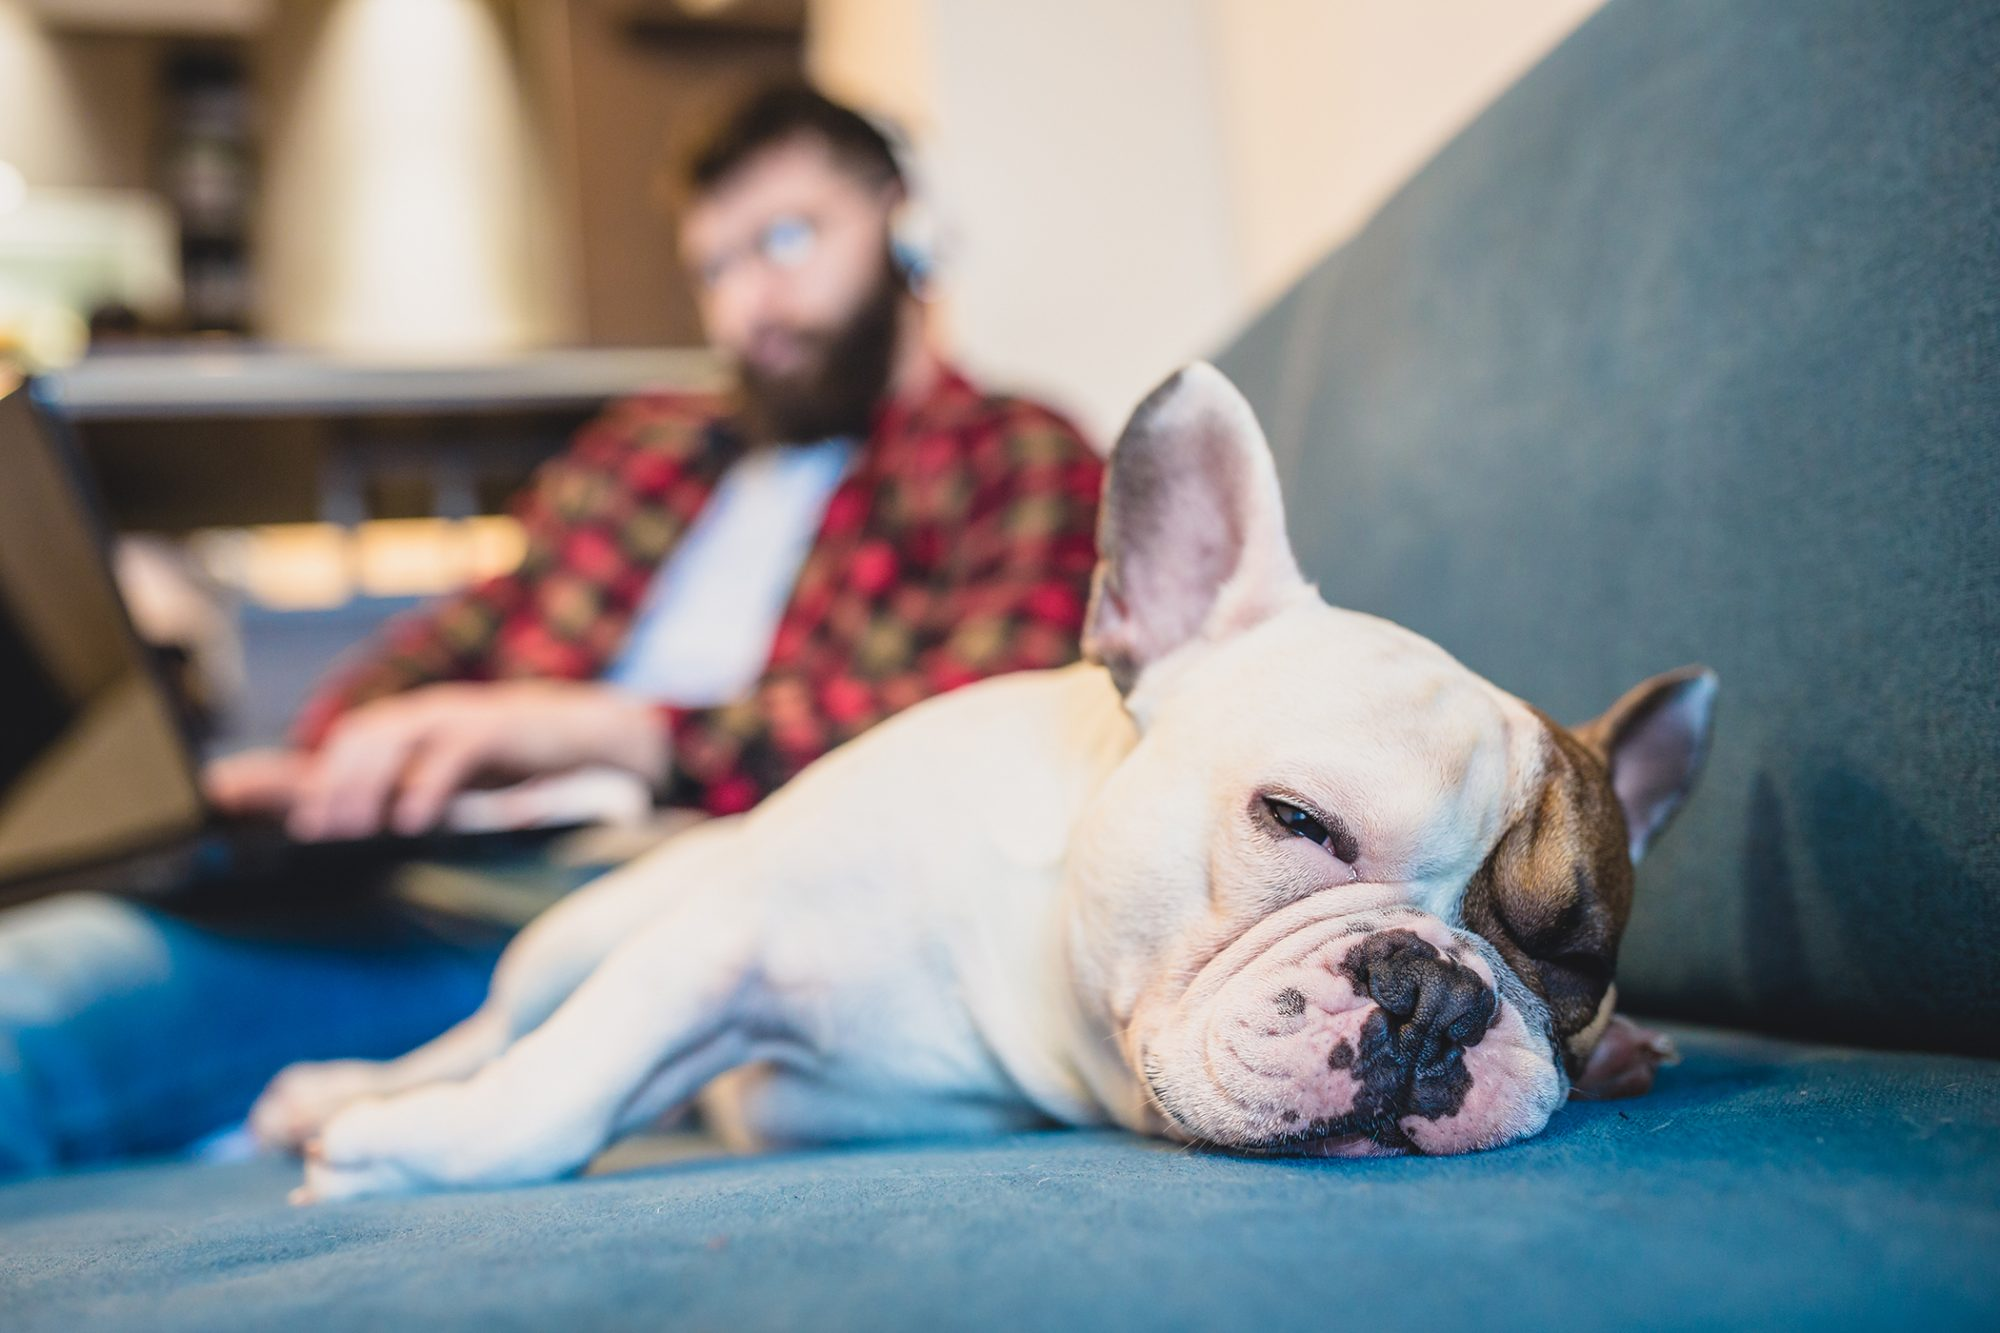 french bulldog with a torn acl lying on the couch next to his owner